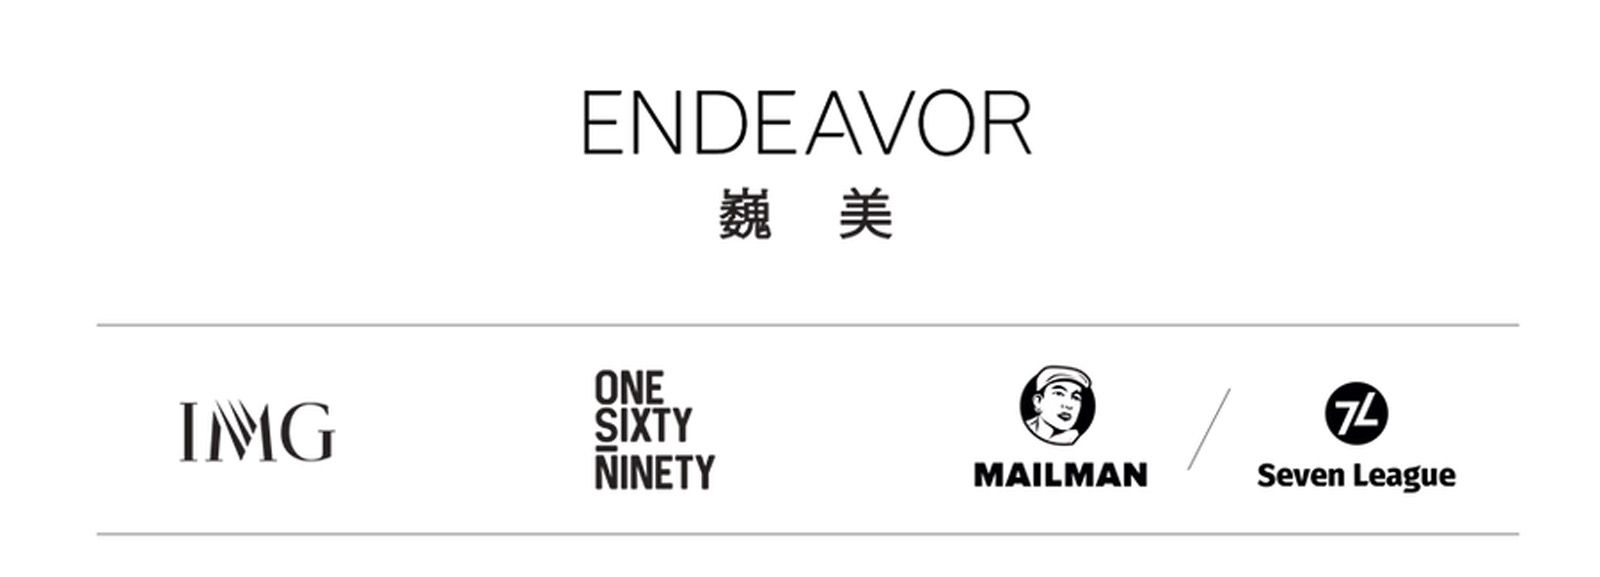 Endeavor acquires Mailman in China